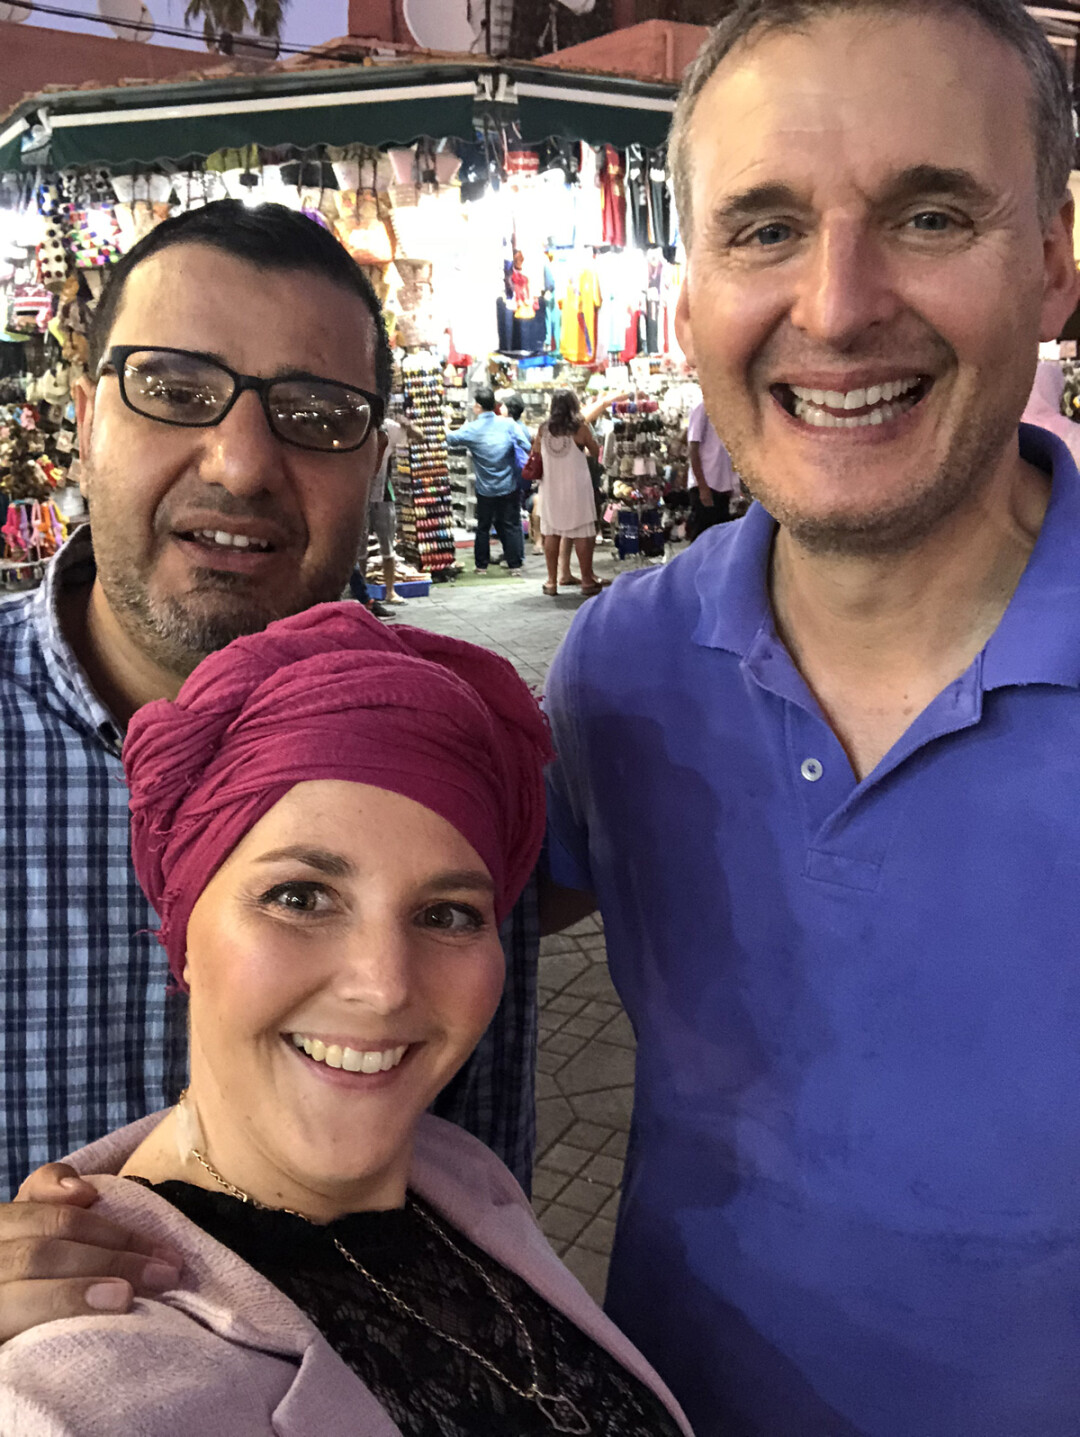 Amanda Mouttaki poses for a picture with her husband and Phil Rosenthal from Somebody Feed Phil.